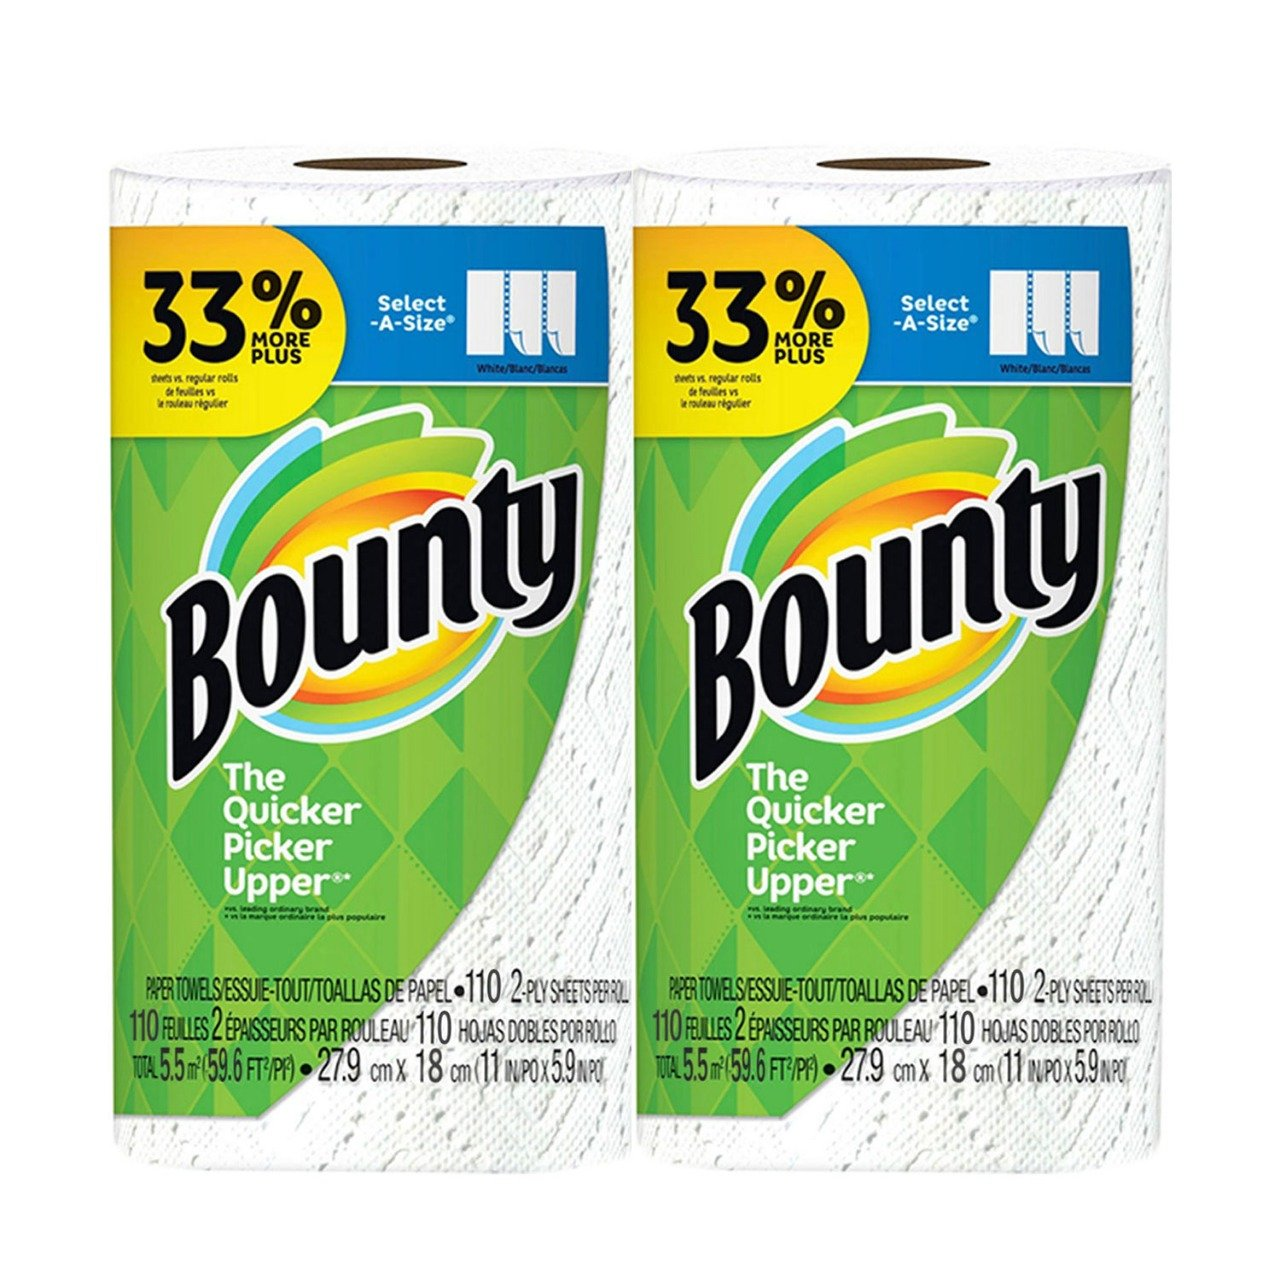 Amazon.com : Bounty Advanced Select A-size, 11 X 7.1 Inch, White, 220 Pound : Beauty